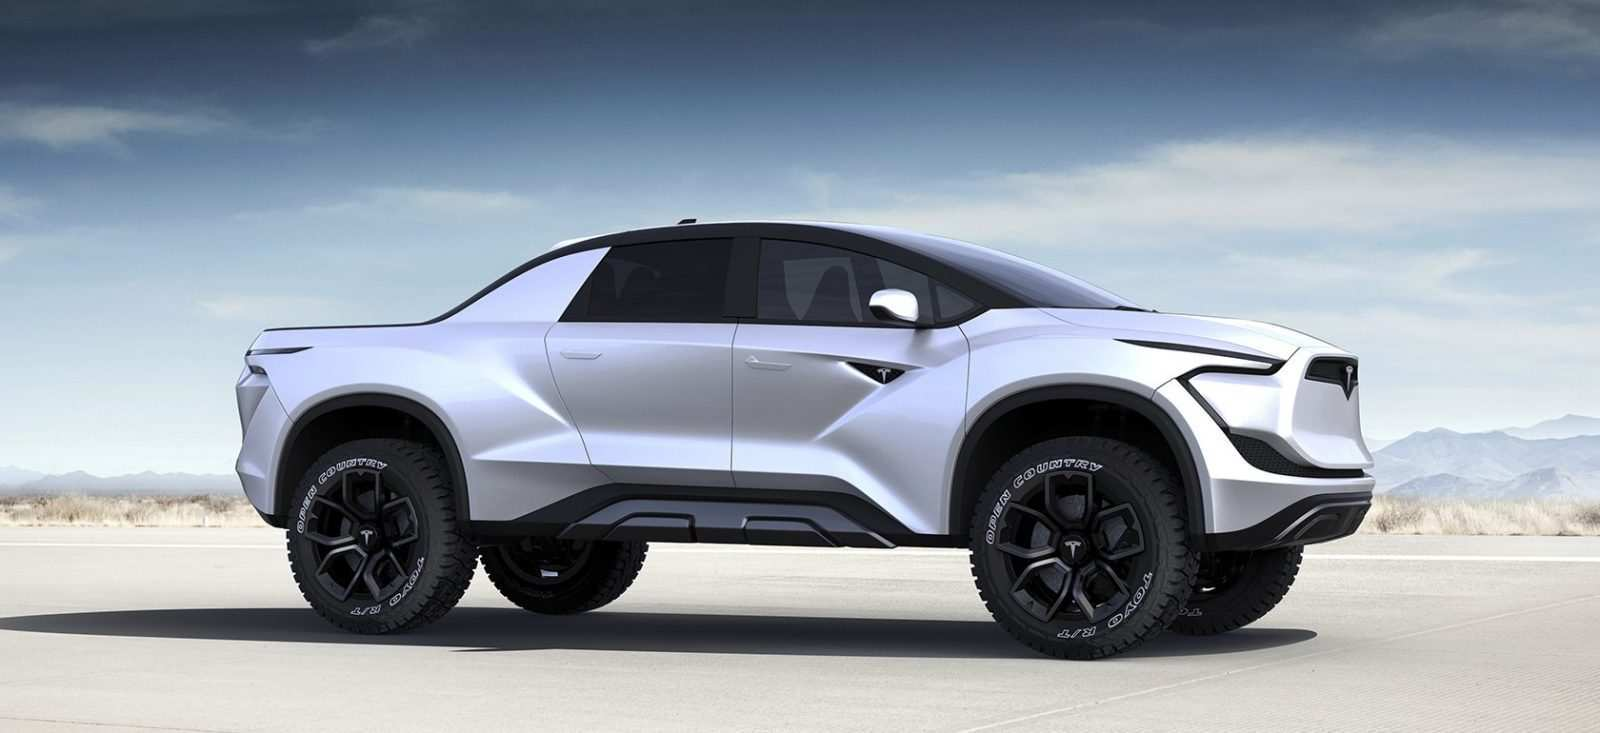 62 The Best 2020 Tesla Truck Concept